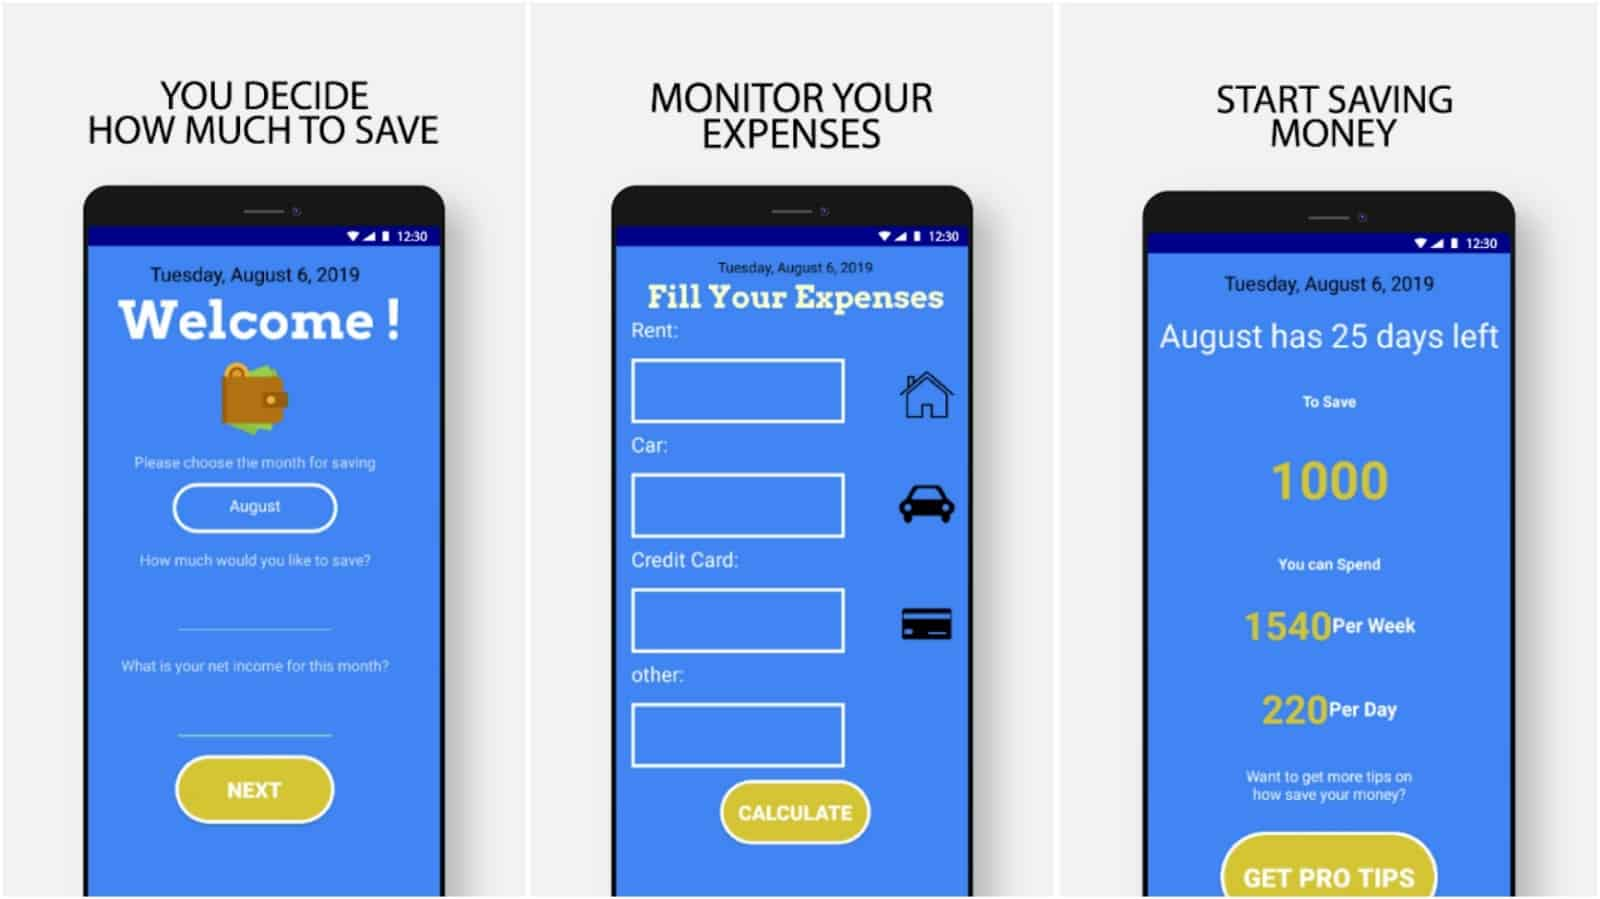 How To Save Money app grid image